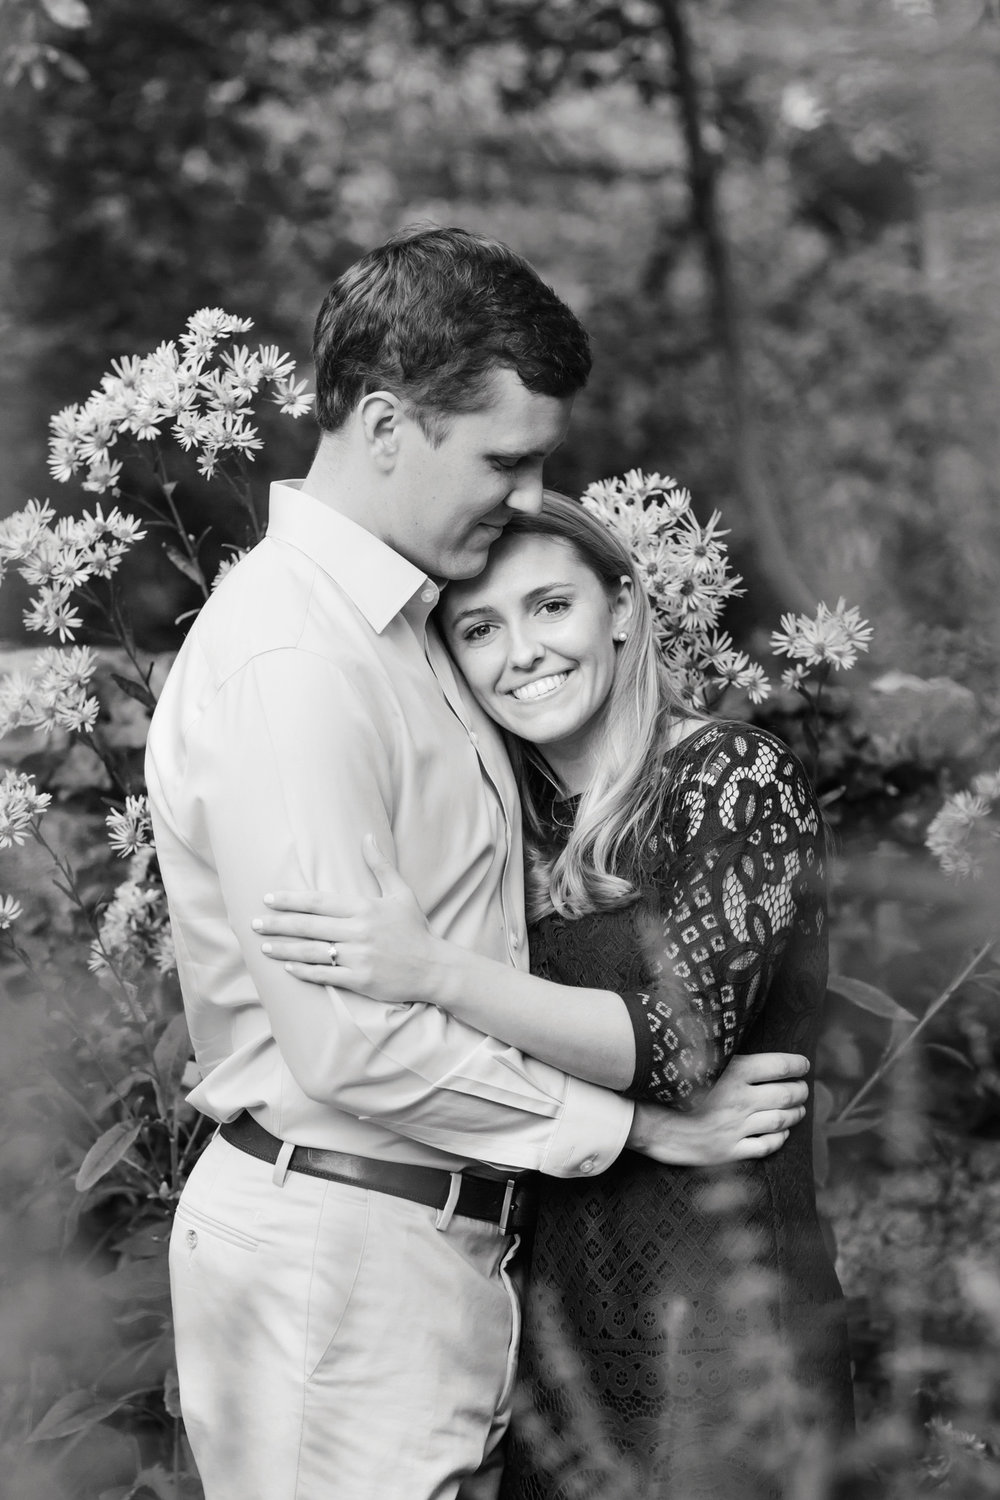 09_Lindsey_Will_Cross_Estate_Gardens_Bernardsville_NJ_Engagement_Photos_178.jpg